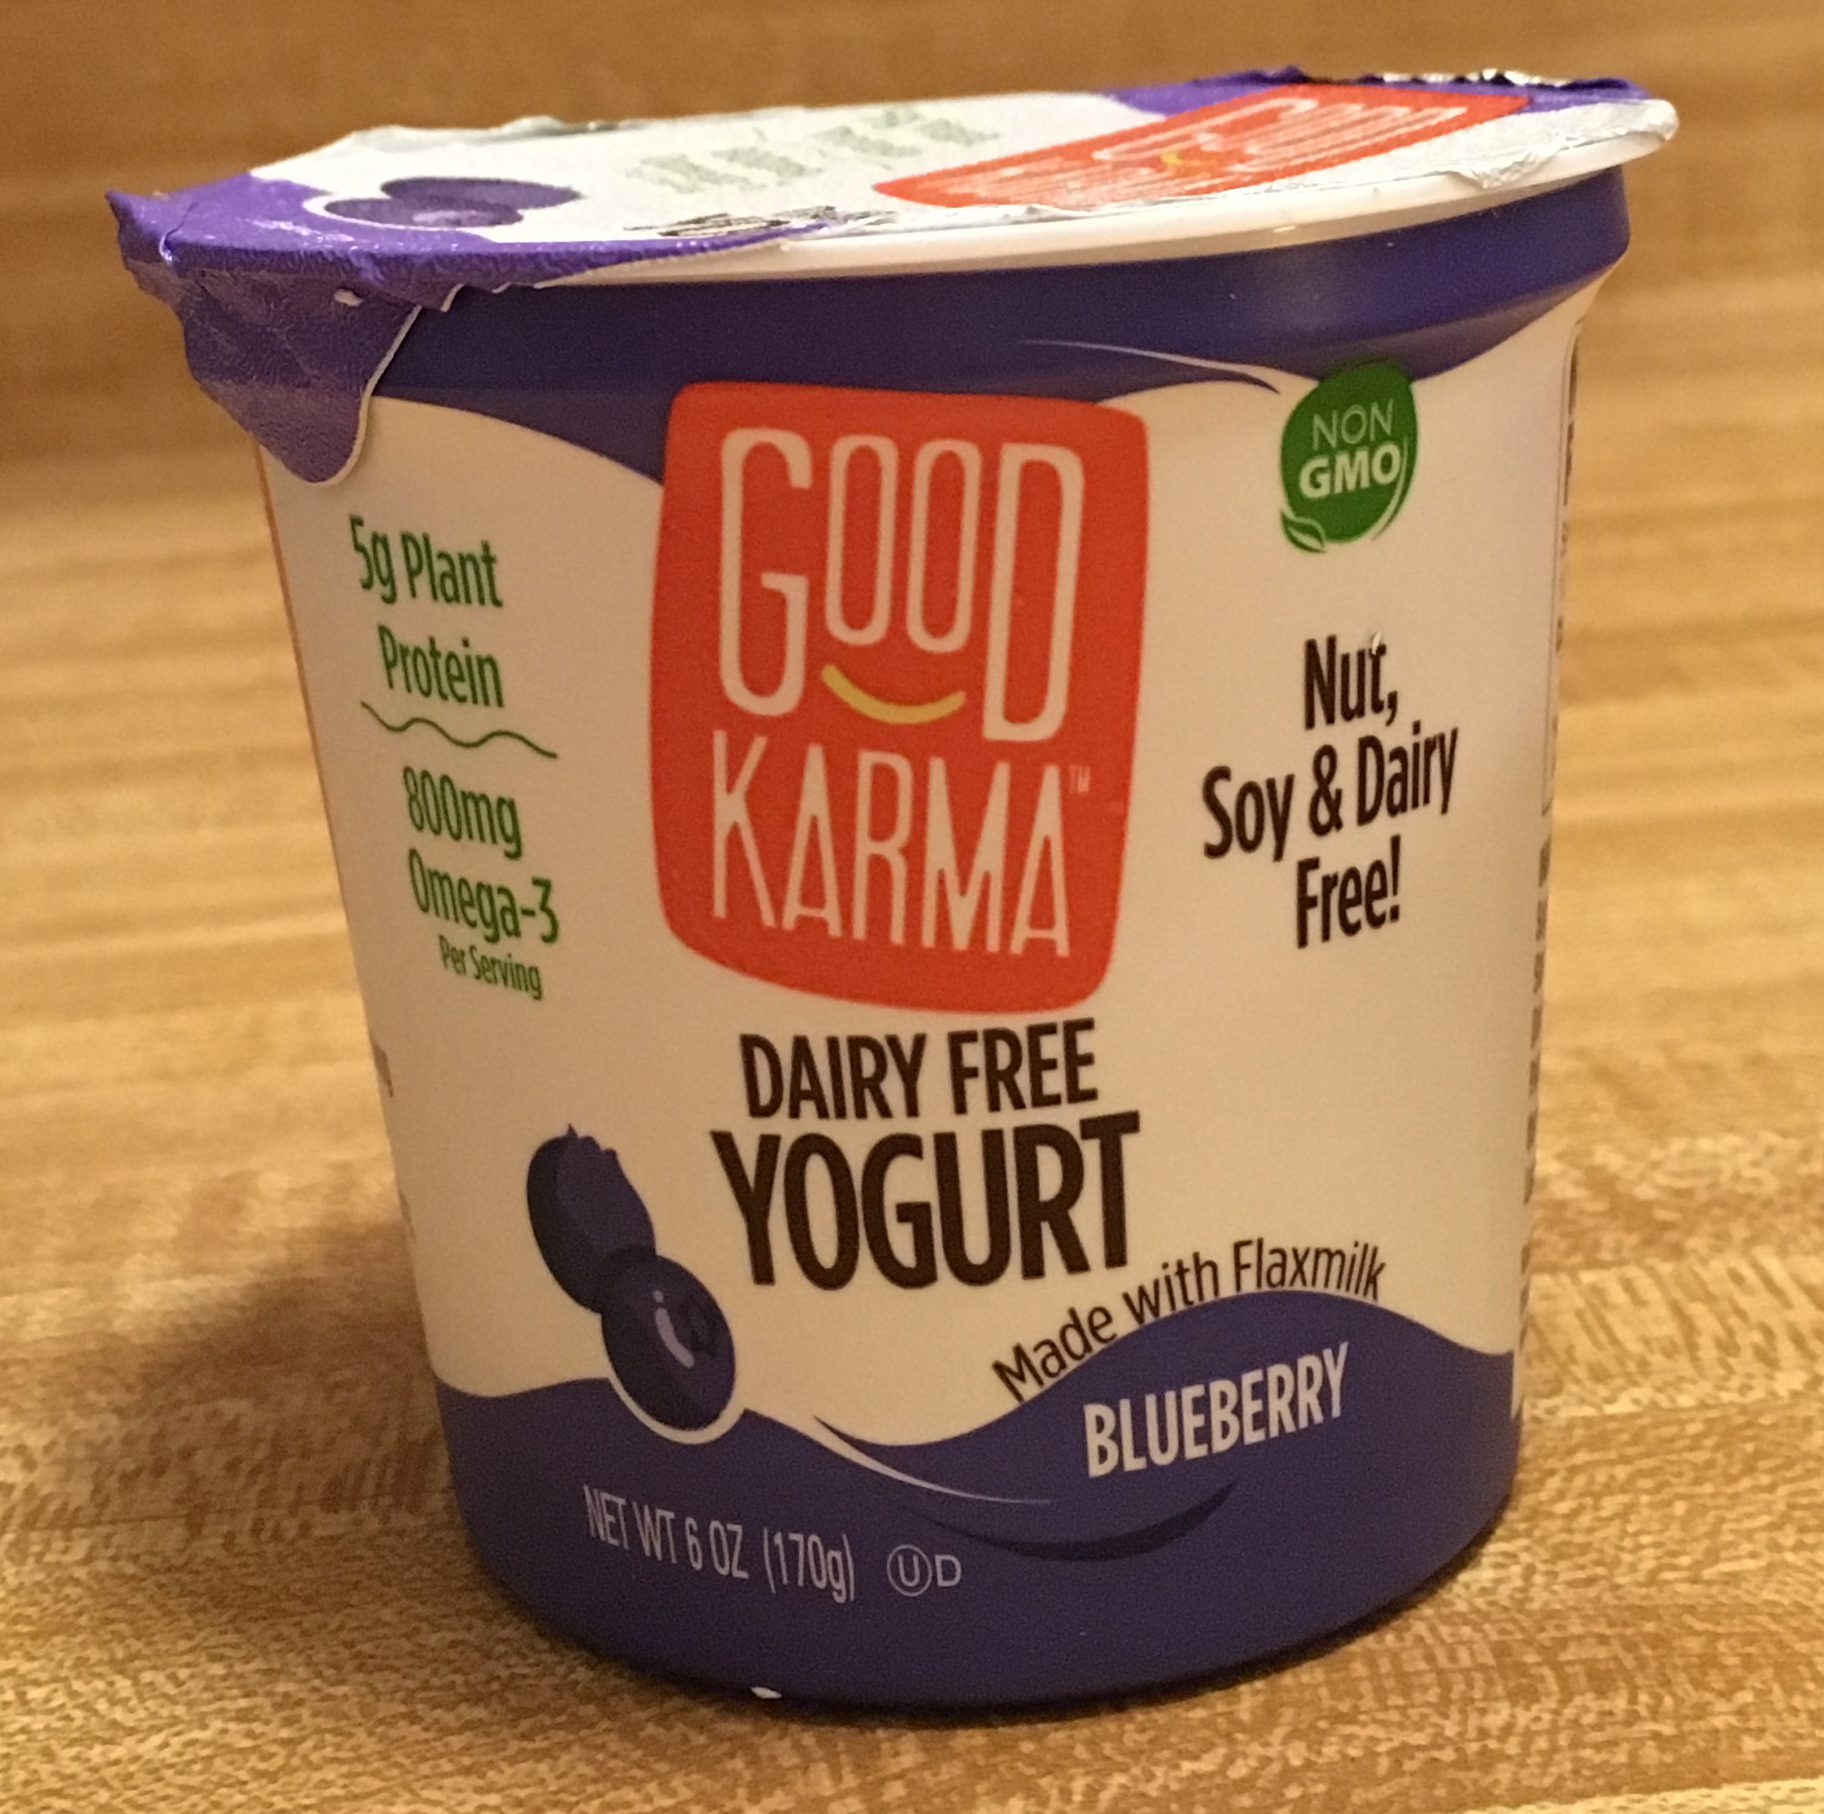 product review good karma non dairy yogurt the worley gig